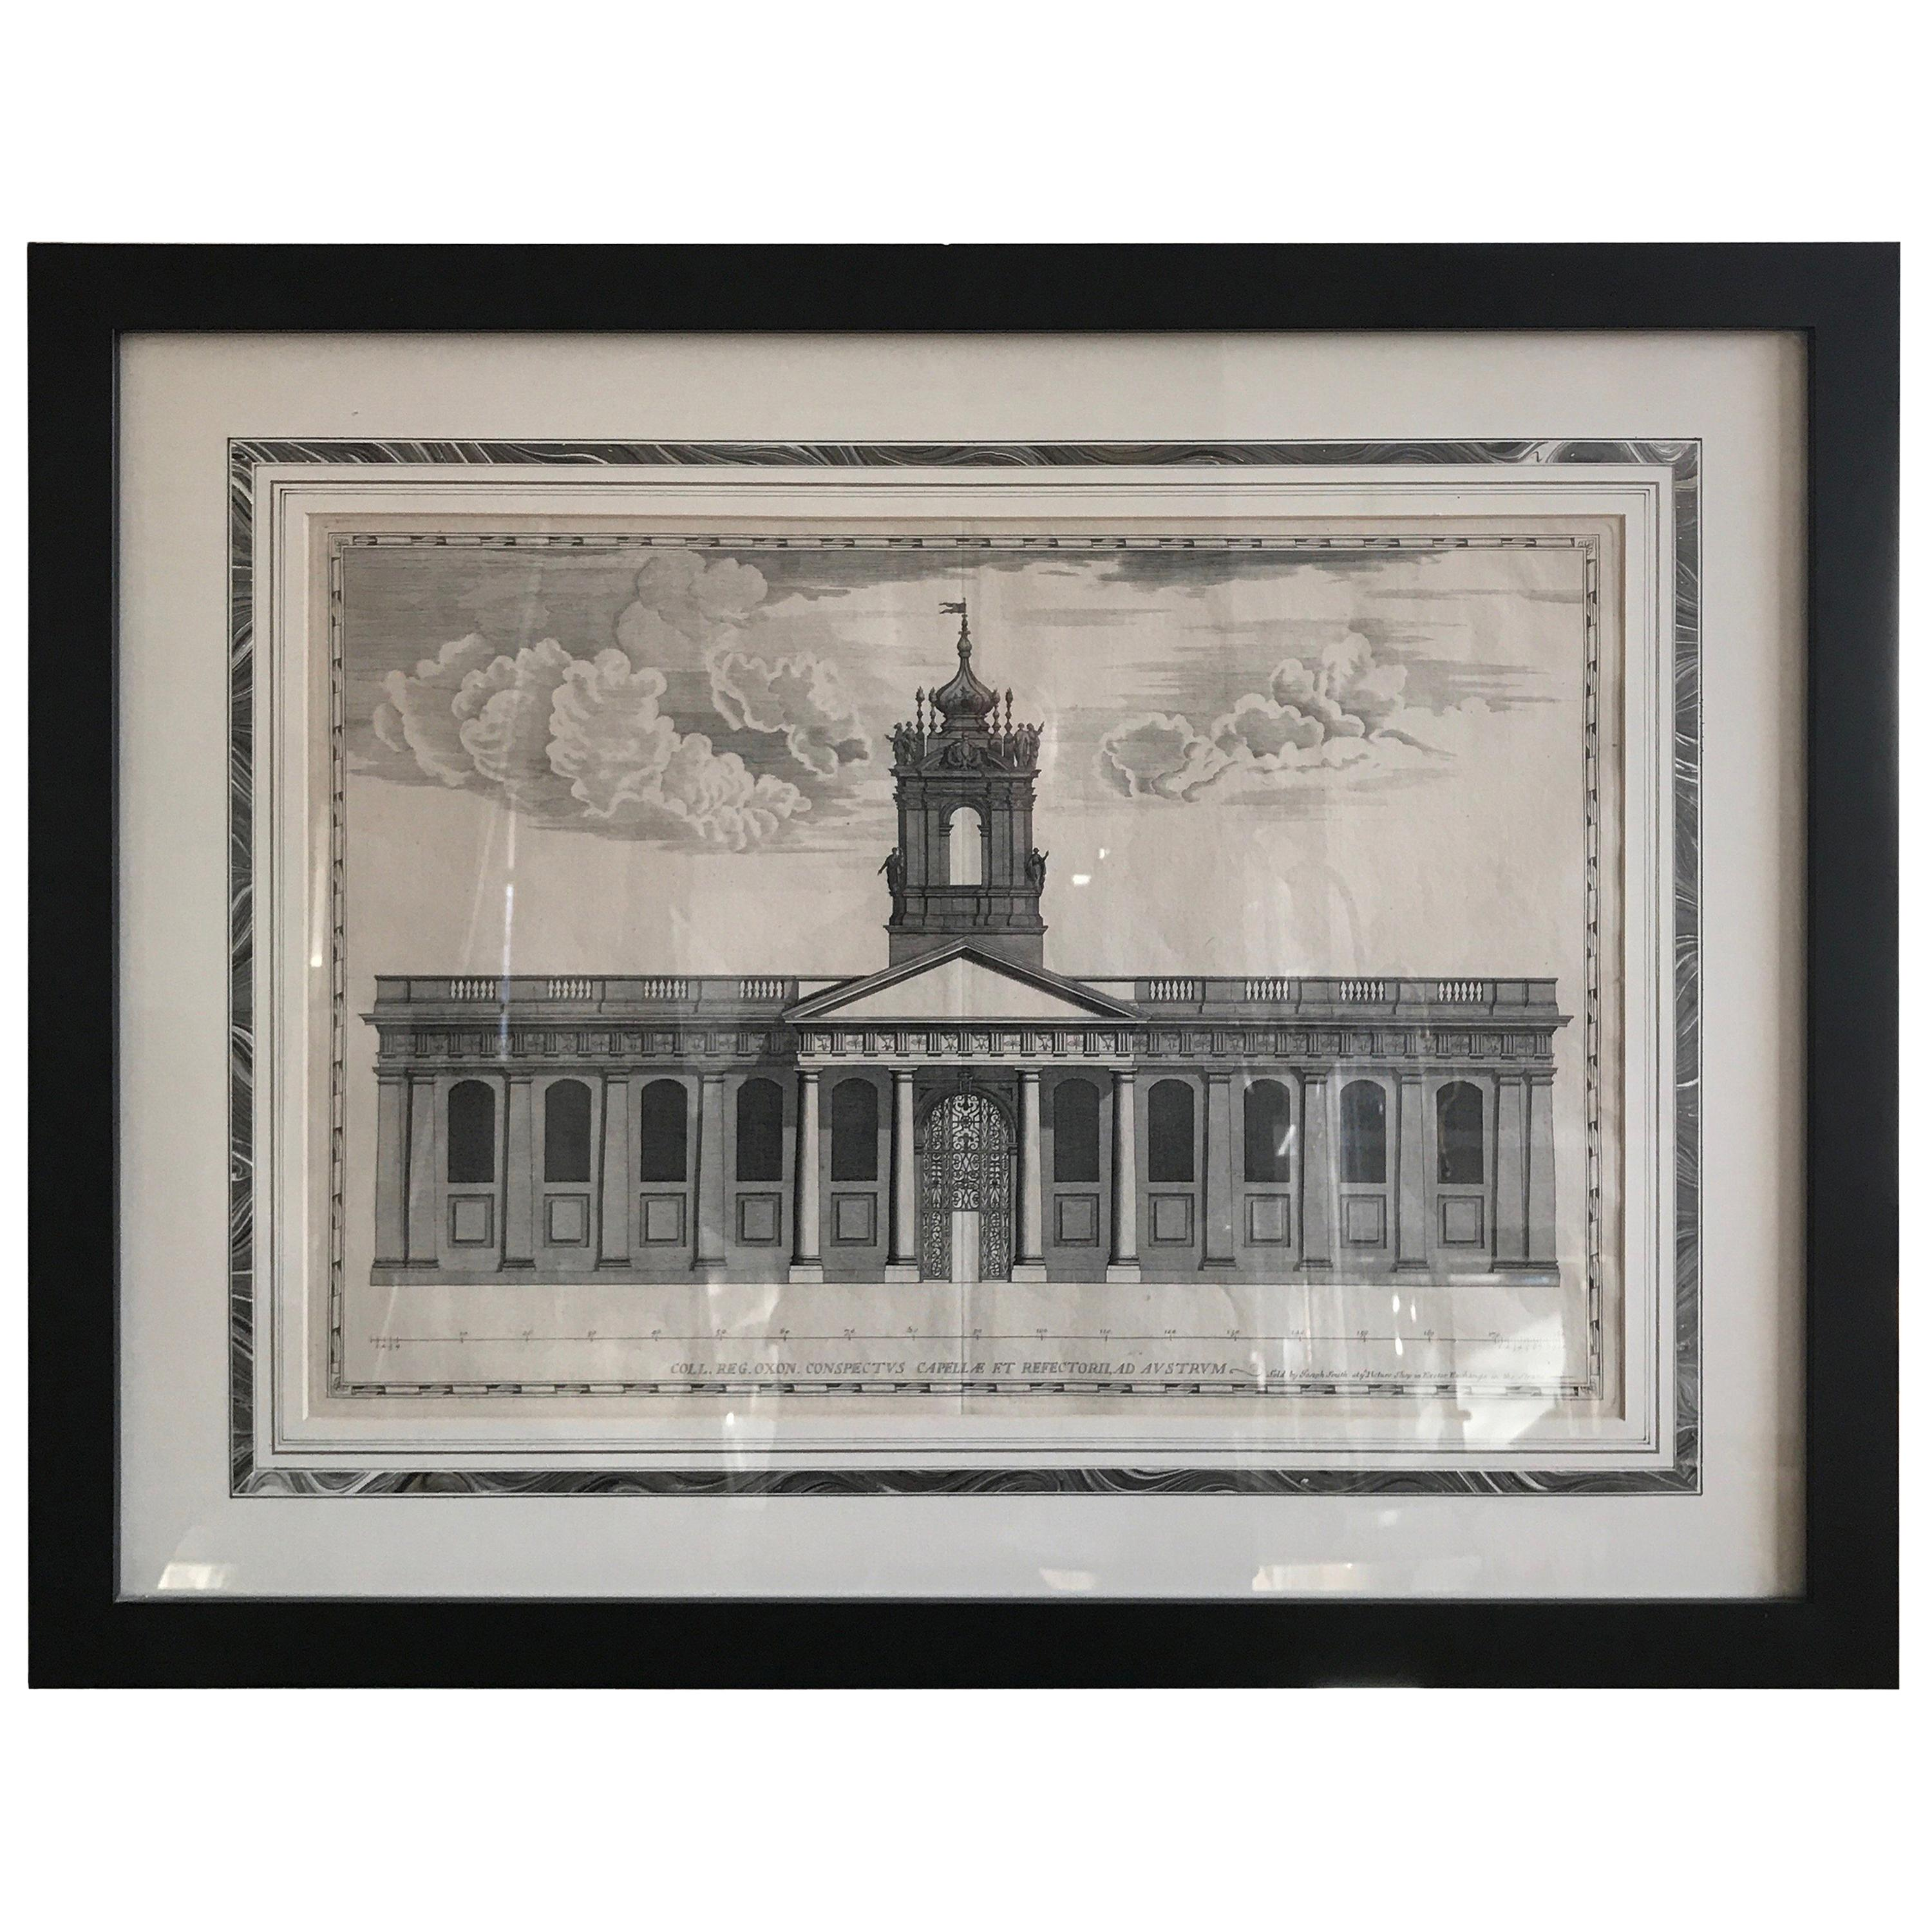 Engraving of Oxford University Administration Building, 18th Century